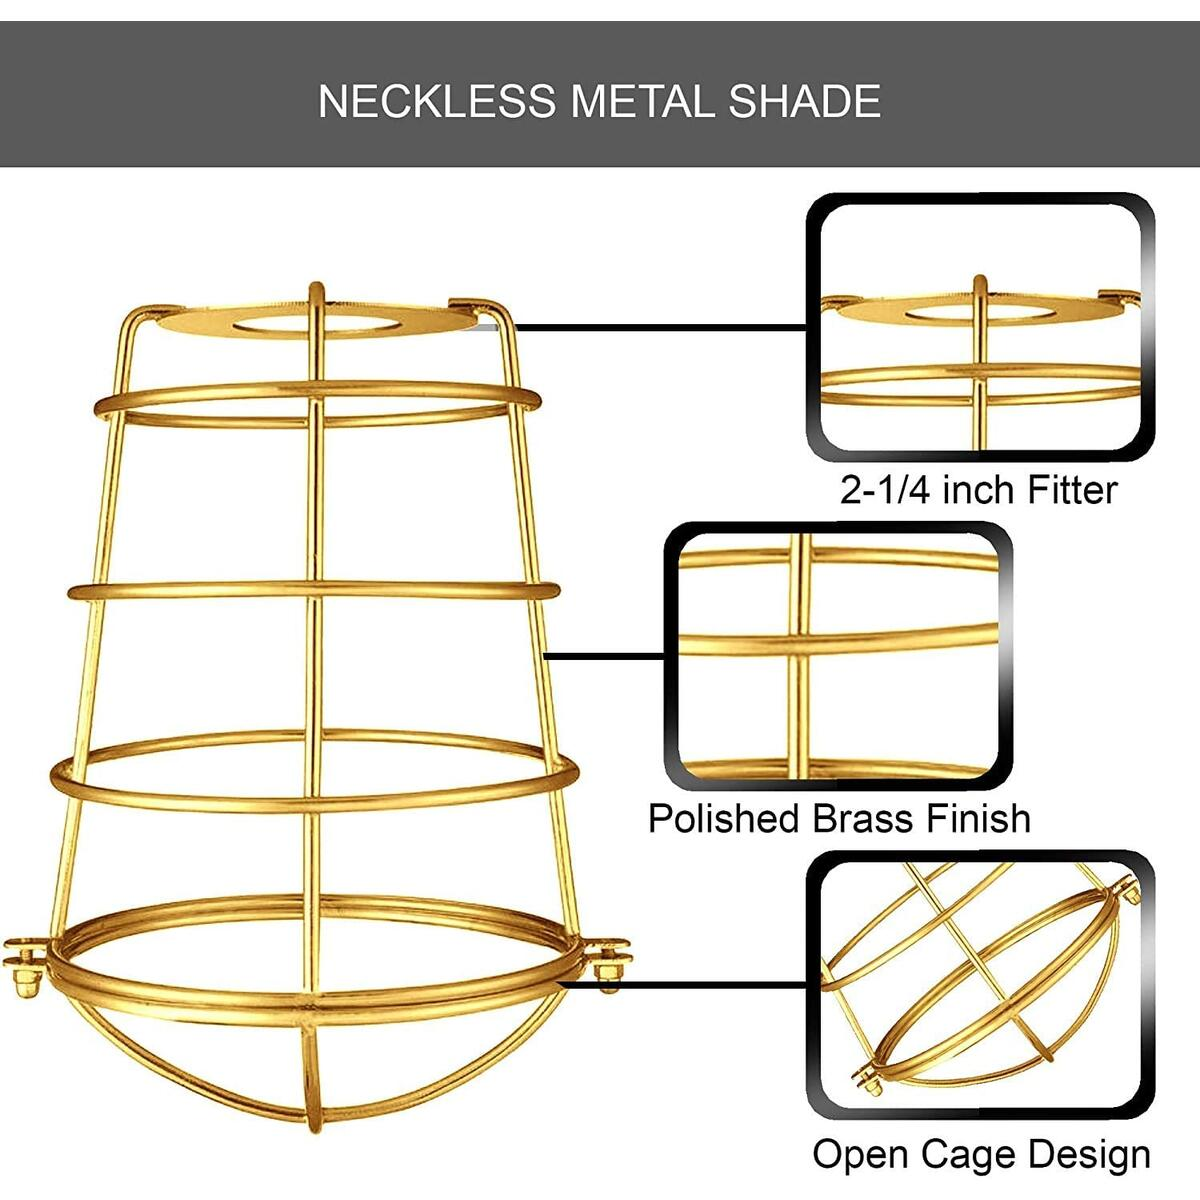 Dysmio Metal Bulb Guard Lamp Cage, Wire lamp Shade, 2-1/4-Inch Fitter Polished Brass Industrial Cage,for Pendant Light, Lamp Holder, Ceiling Fan Light Bulb Covers Vintage Style Industrial Grade